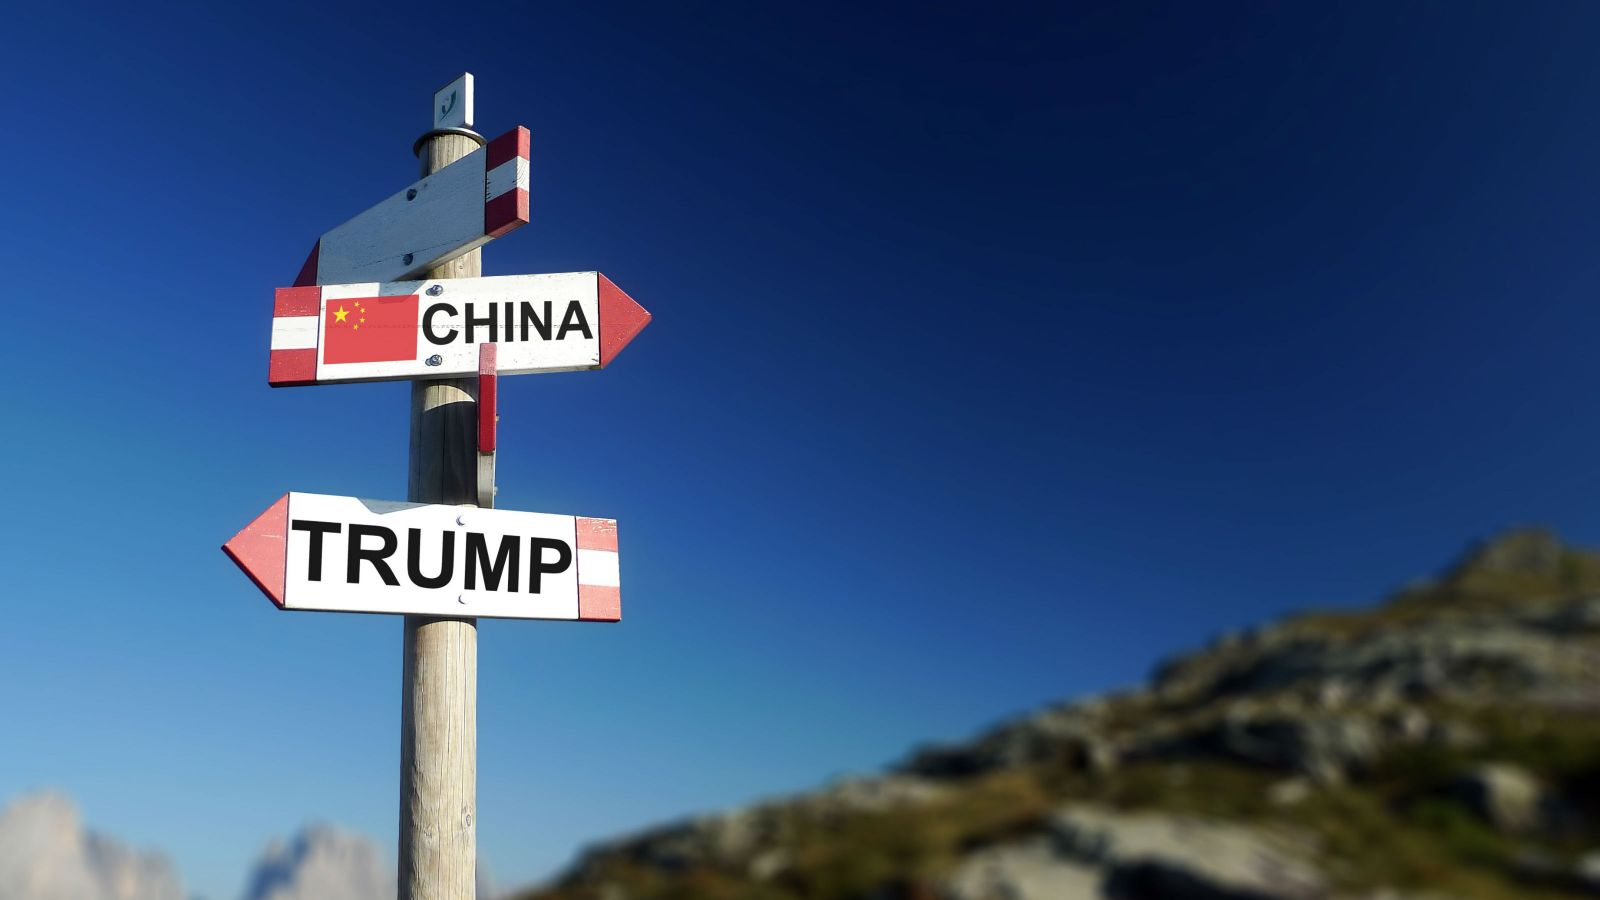 Direction sign post with Trump and China